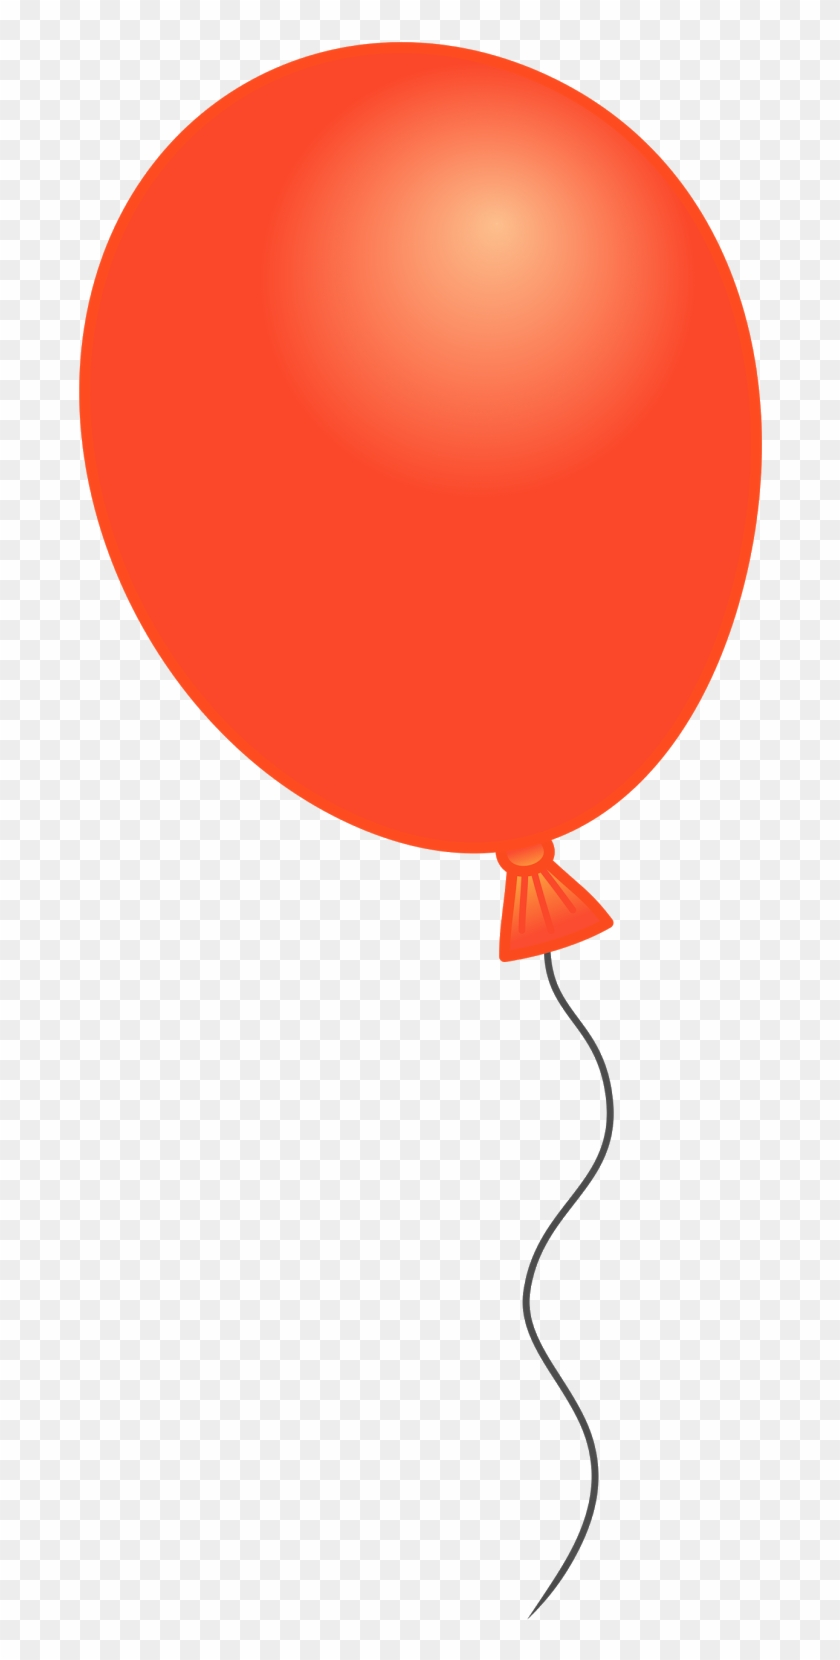 Balloon clipart svg royalty free library Svg Library Orange Balloon Cliparts Download Clip Art - Single ... royalty free library